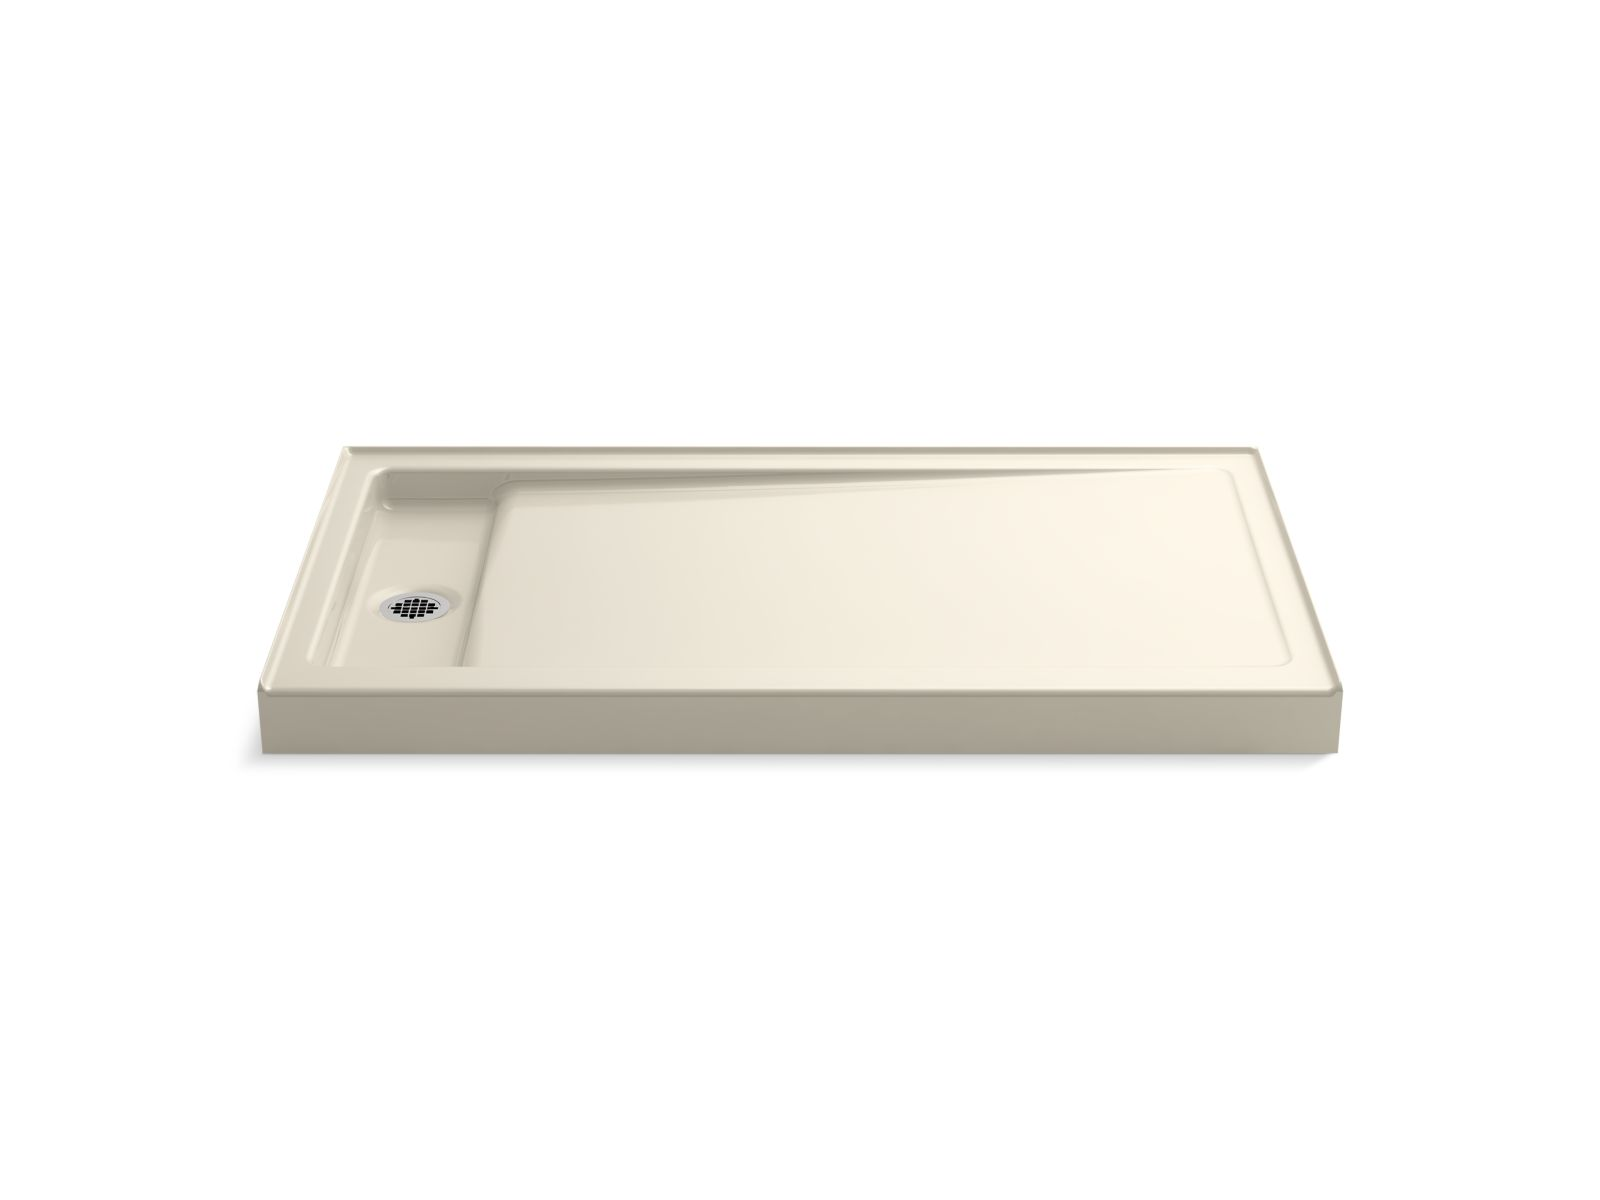 "Kohler Bellwether® K-9177-47 60"" x 34"" single-threshold shower base with left center drain Almond"